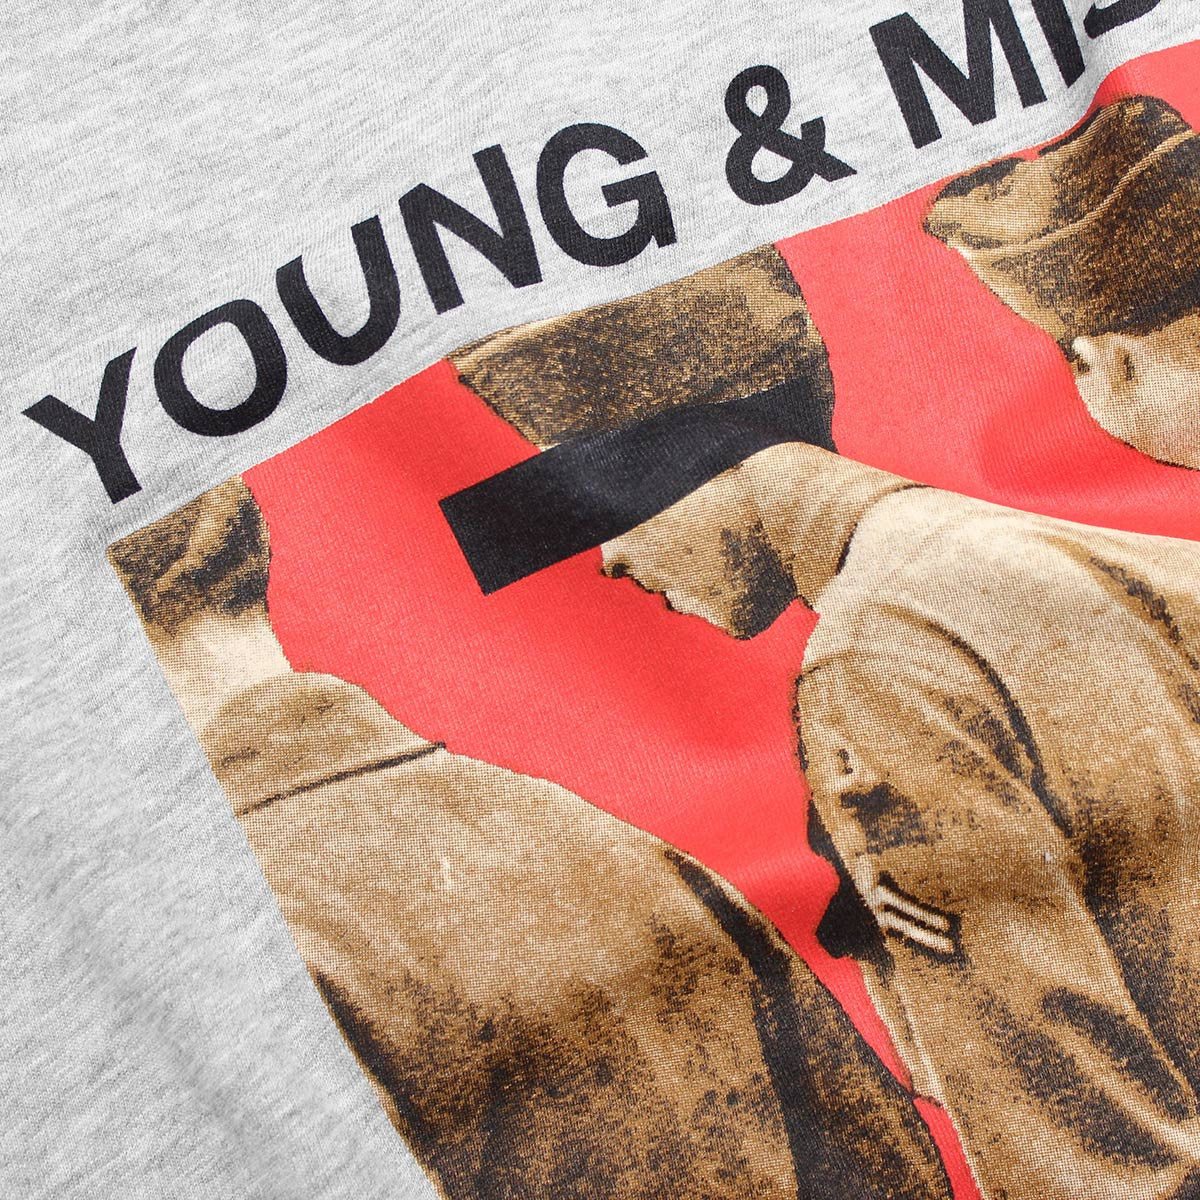 Obey Young & Misled T-Shirt